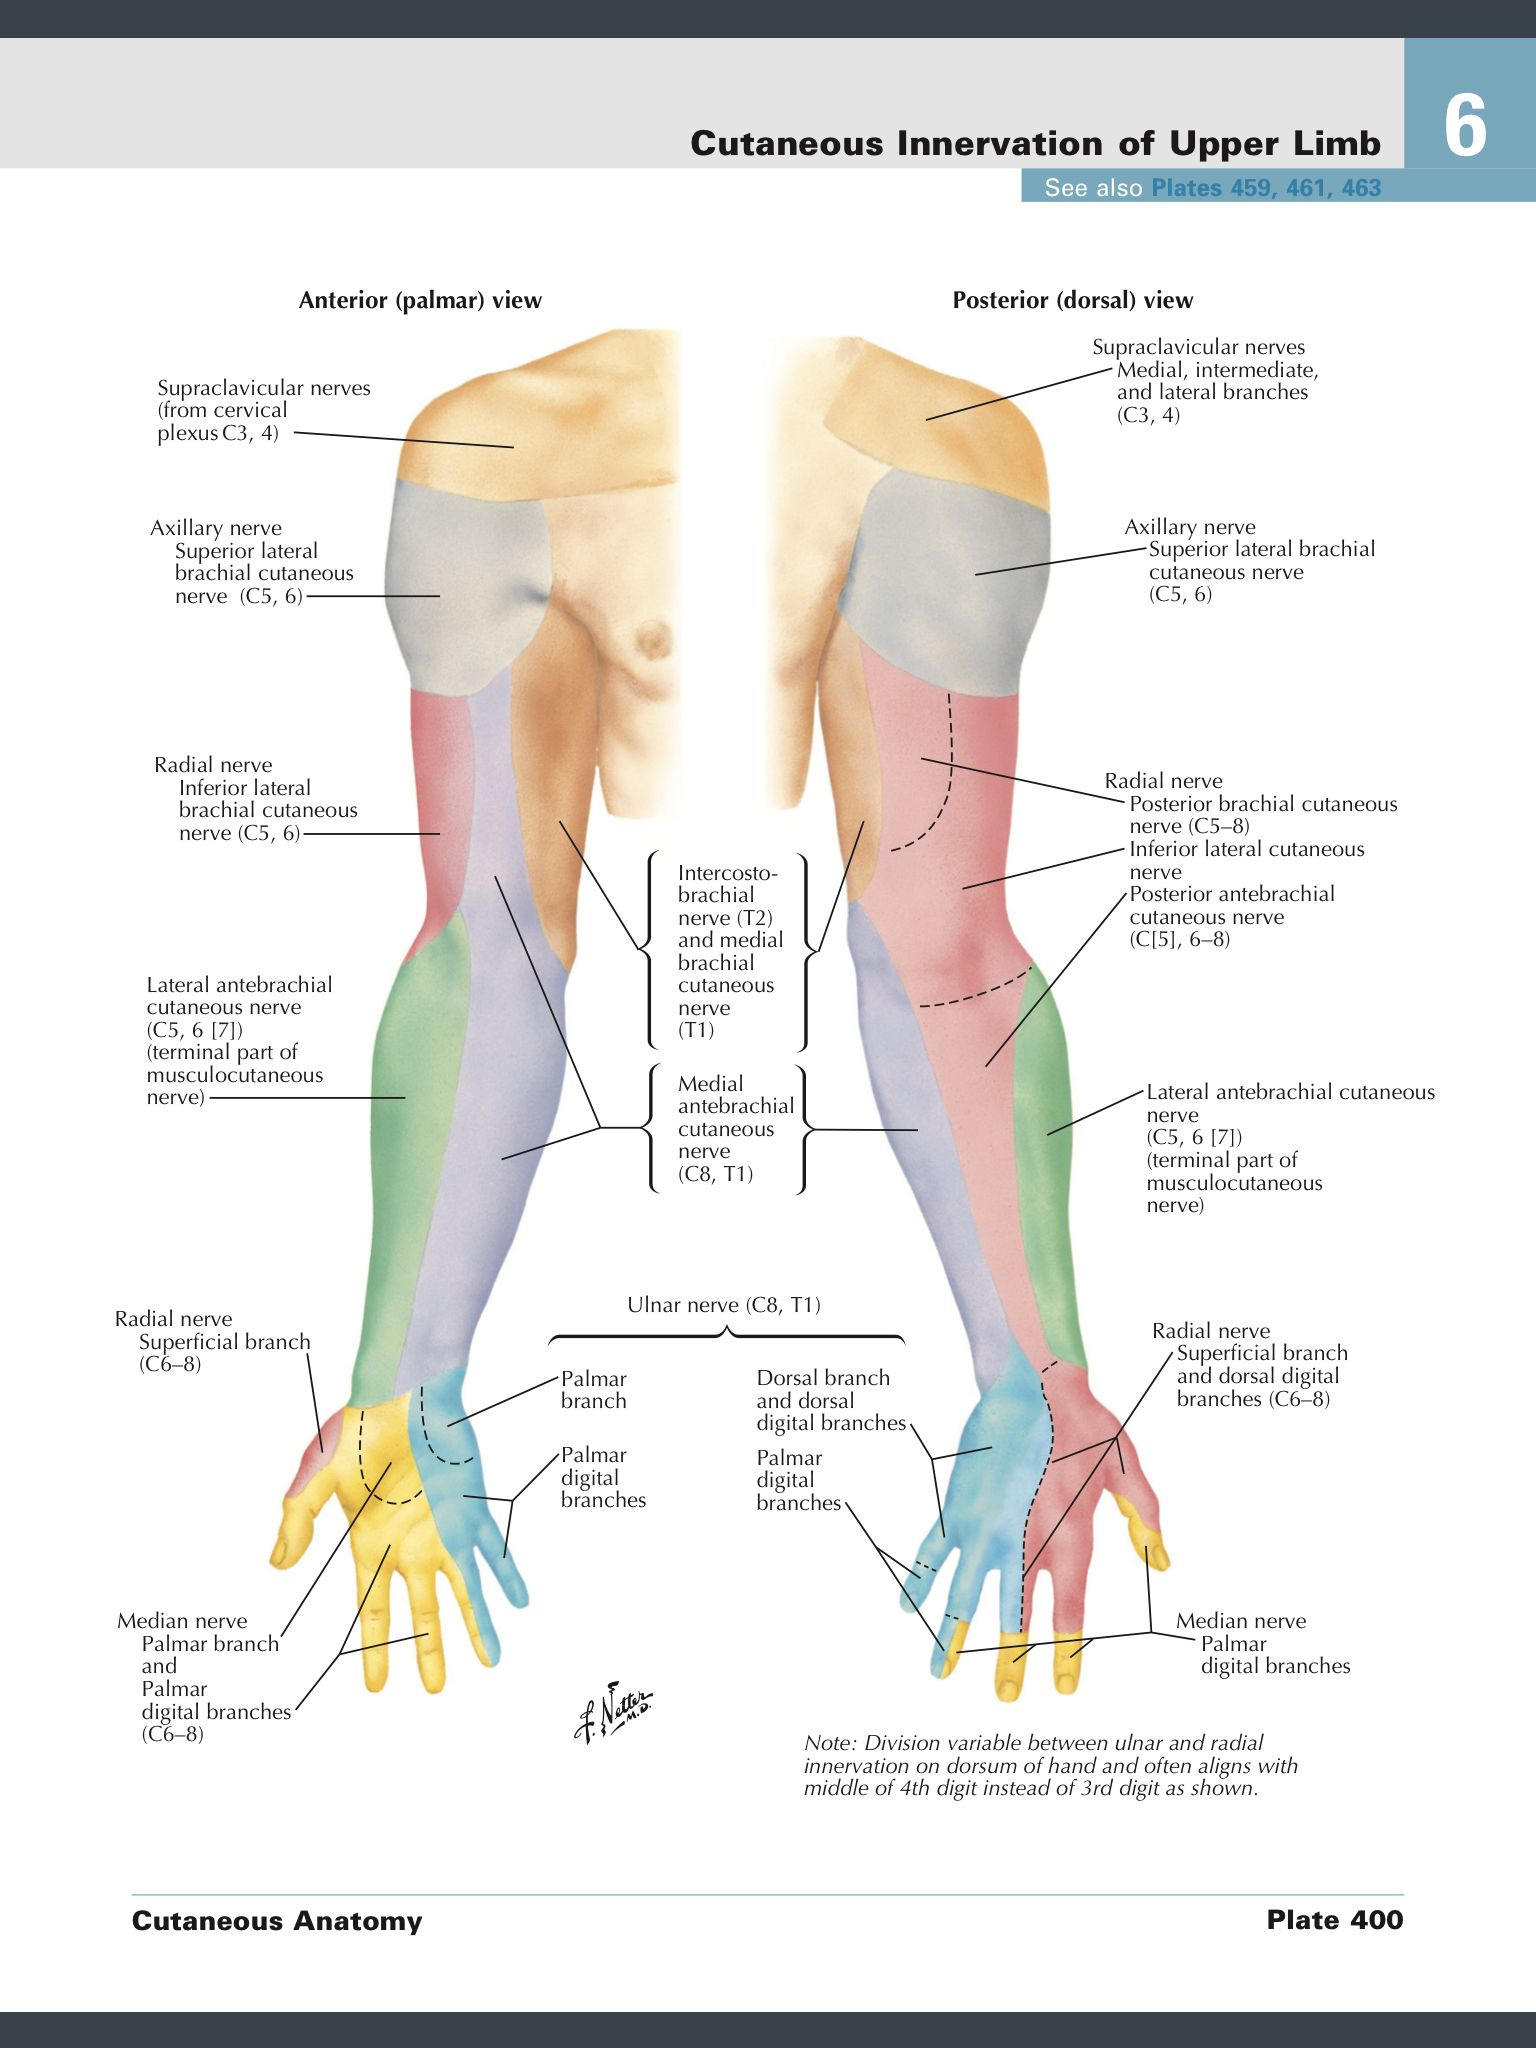 Cutaneous nerve supply forearm, arm, hand | Mednerd | Pinterest